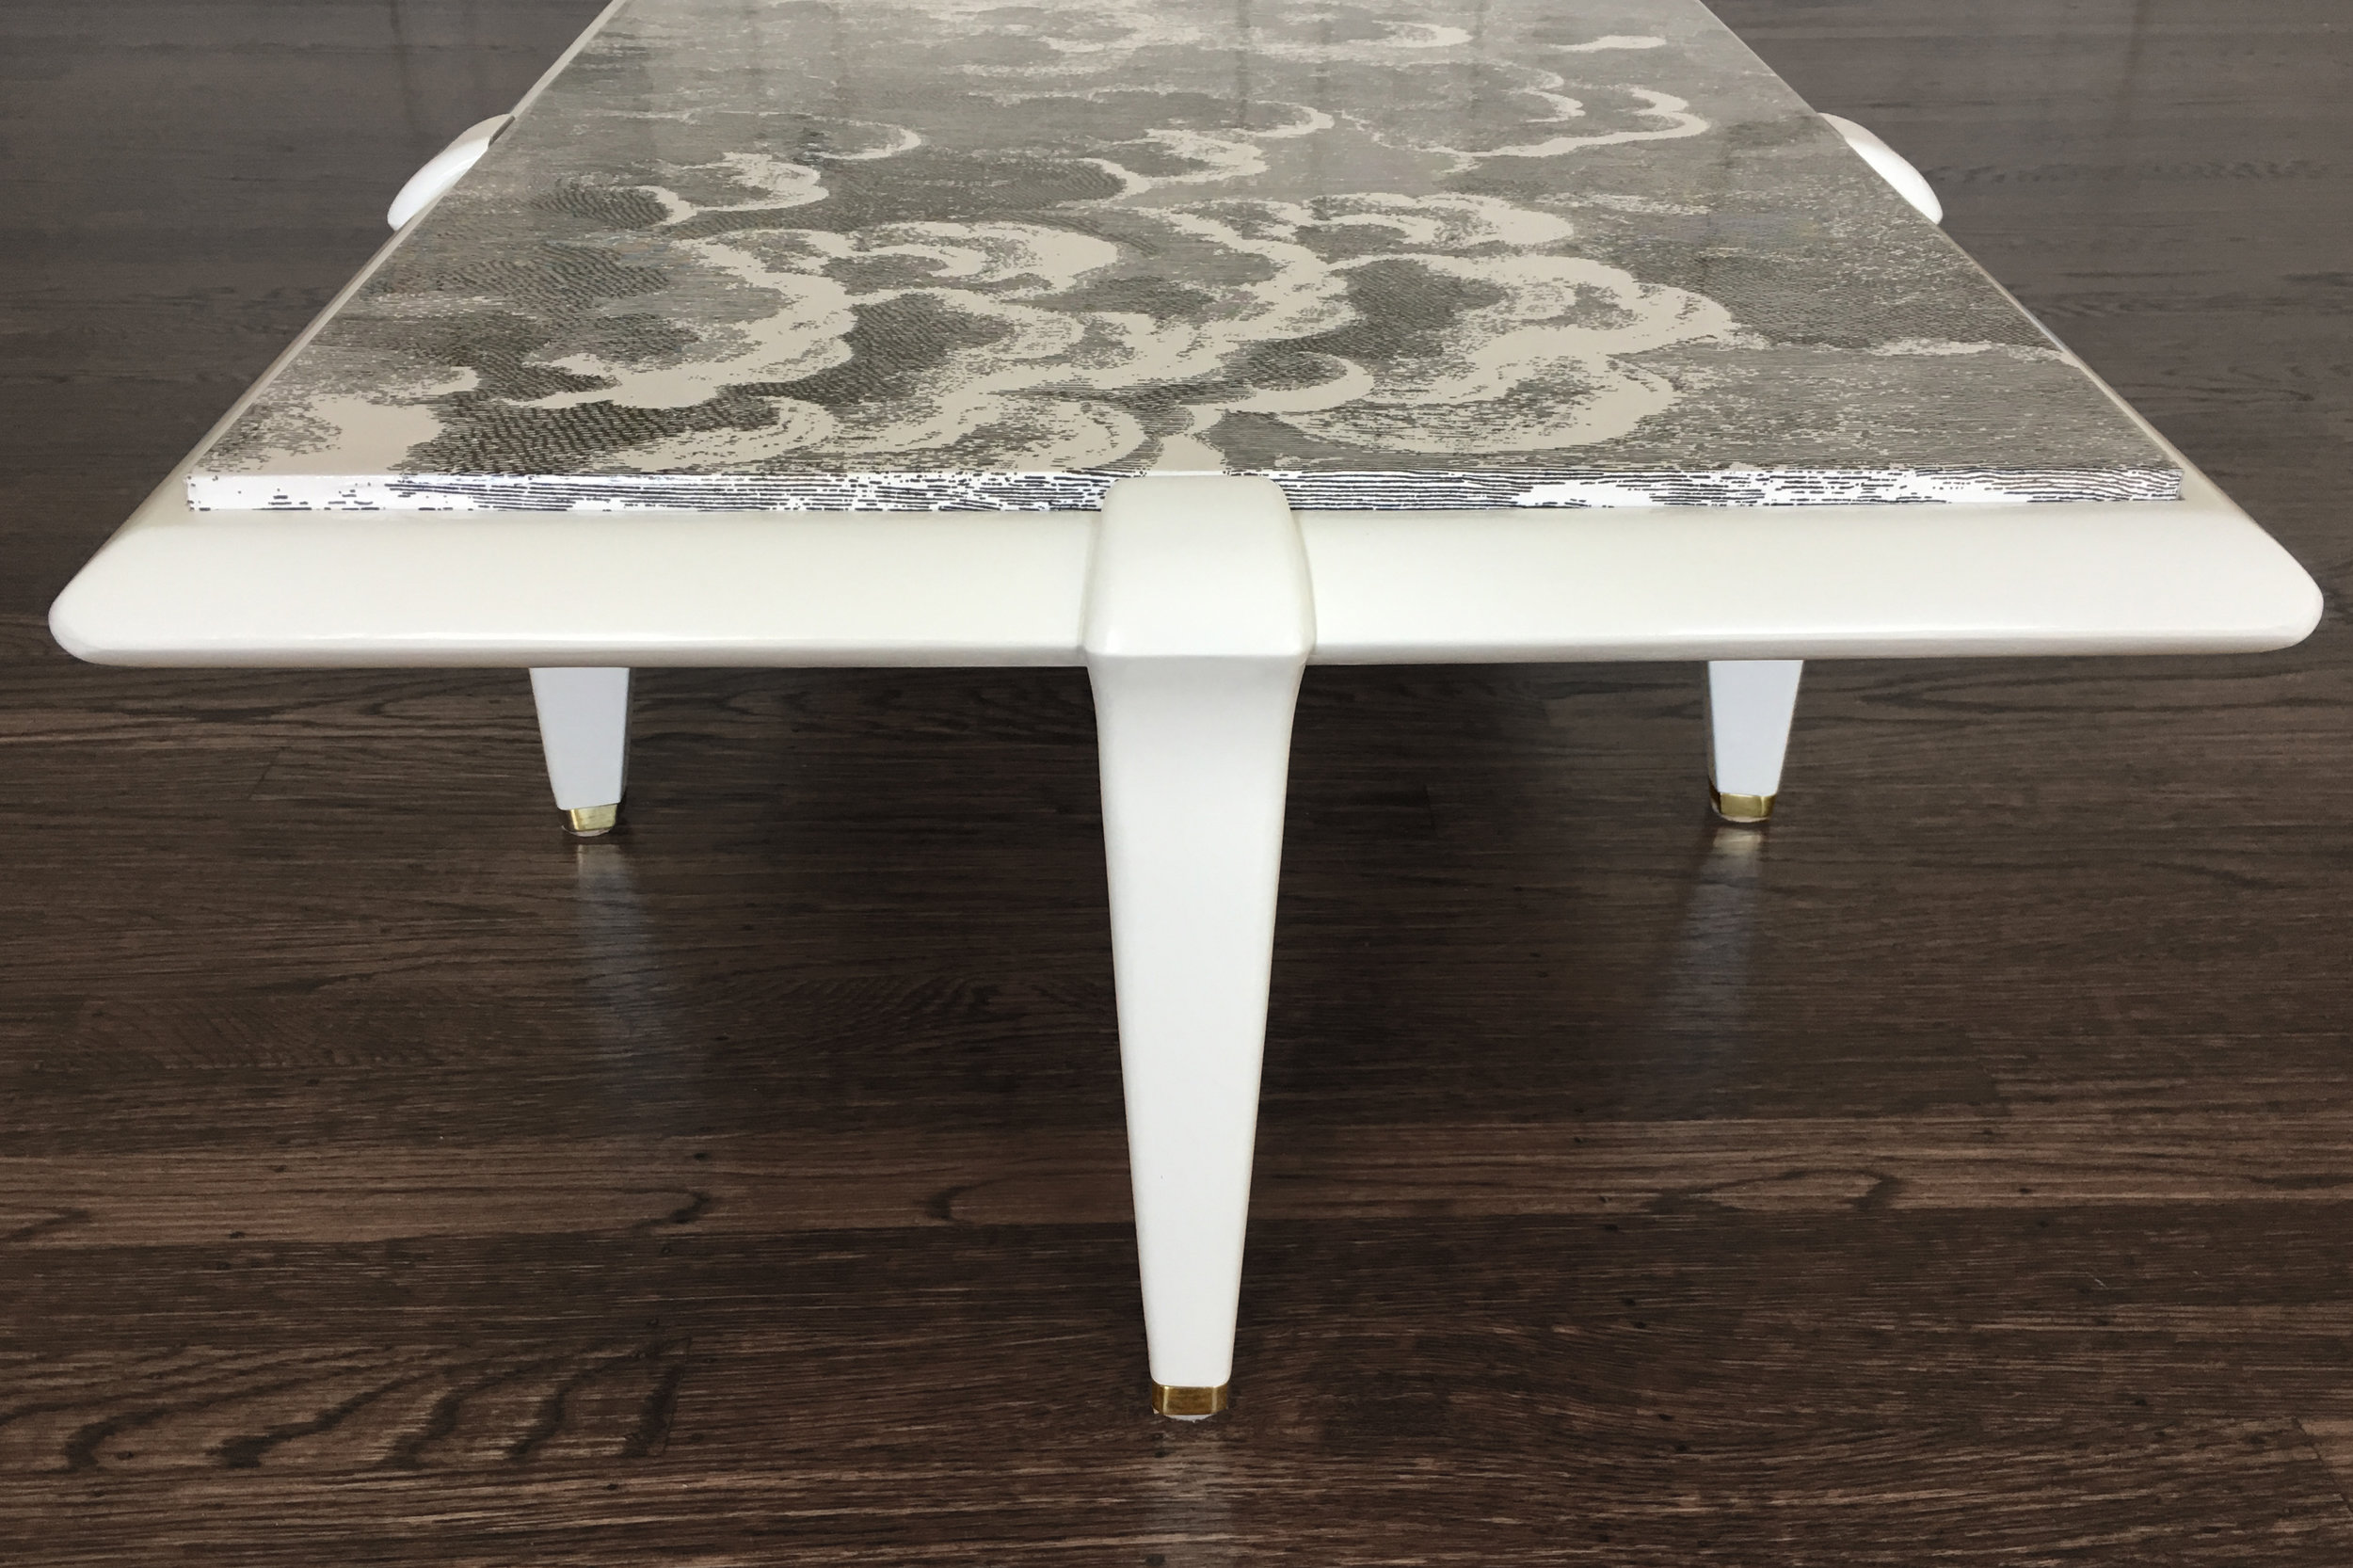 """Revitaliste refinished this Mid-Century Modern Coffee Table with a high gloss white lacquer and wrapped the table top in Fornasetti wallpaper """"Nuvolette"""" then sealed with a high gloss clear coat."""